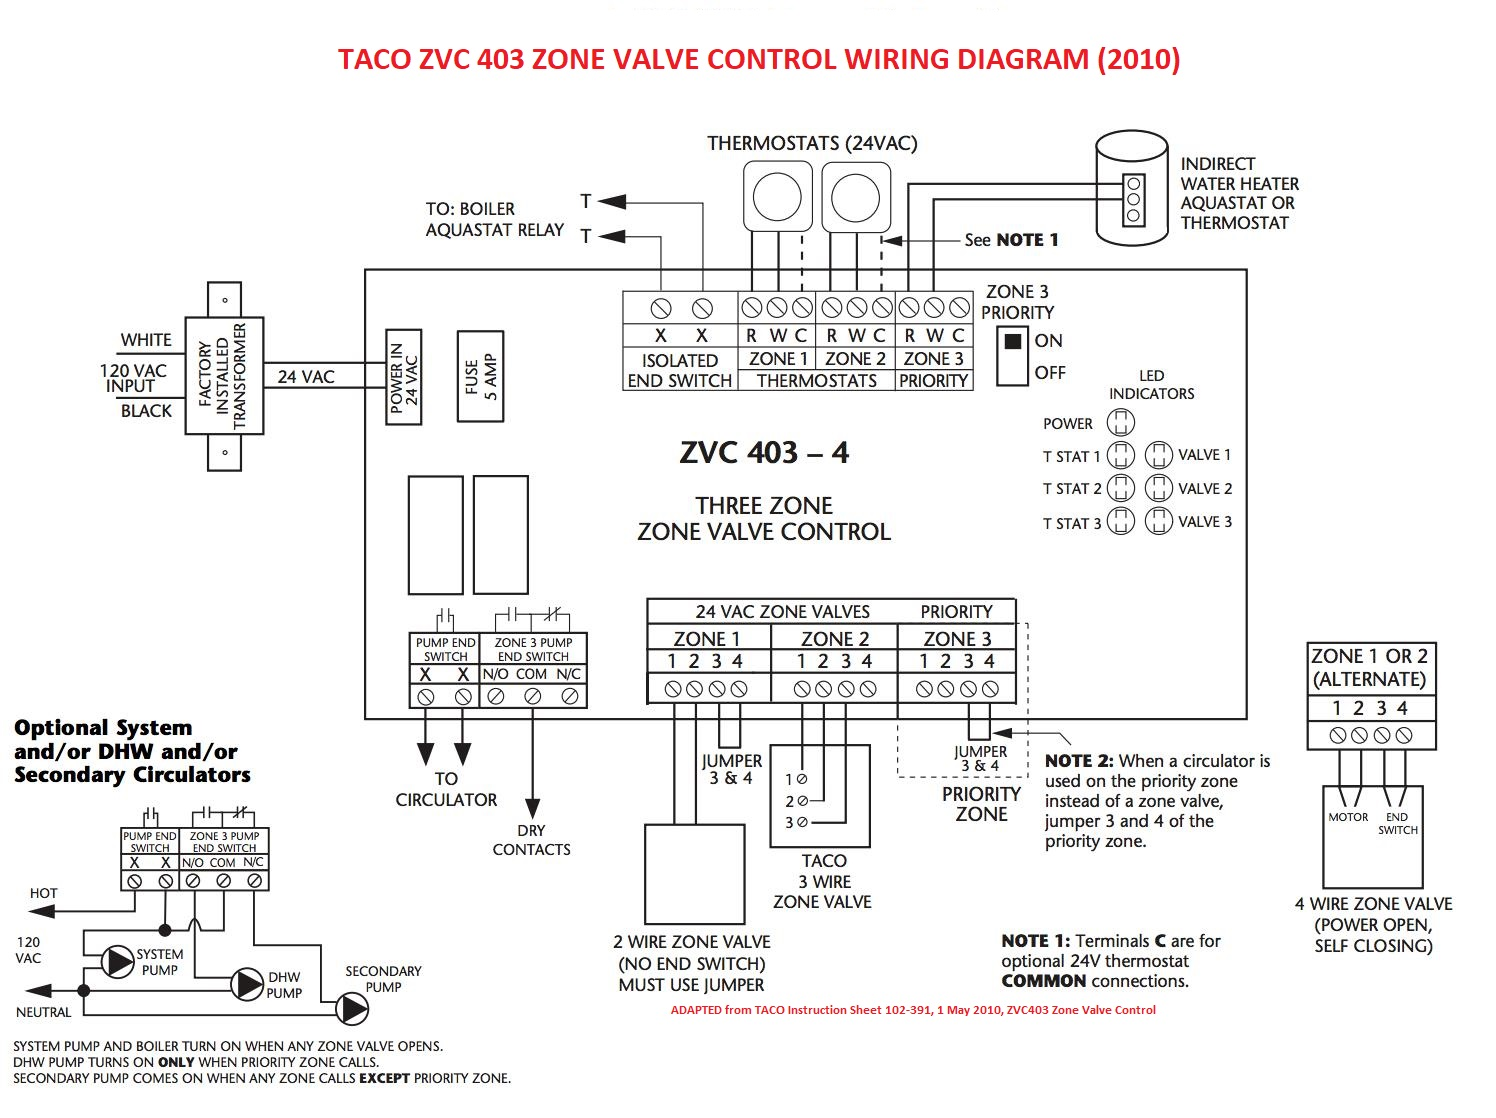 A Wire Gas Valve Wiring Diagram on 3 way valve diagram, gas valve adjustments, gas fireplace thermostat wiring, gas wall heater thermostat wiring, gas fireplace wiring-diagram, gas valve key, gas furnace thermostat wiring, gas valve plug, gas valve box, gas valve replacement, gas valve schematic diagram, gas valve specifications, controls for gas valve diagram, gas valve control panel, gas valve connector, gas valve cover, gas valve coil, gas valve troubleshooting, gas valve components diagram, gas valve parts,